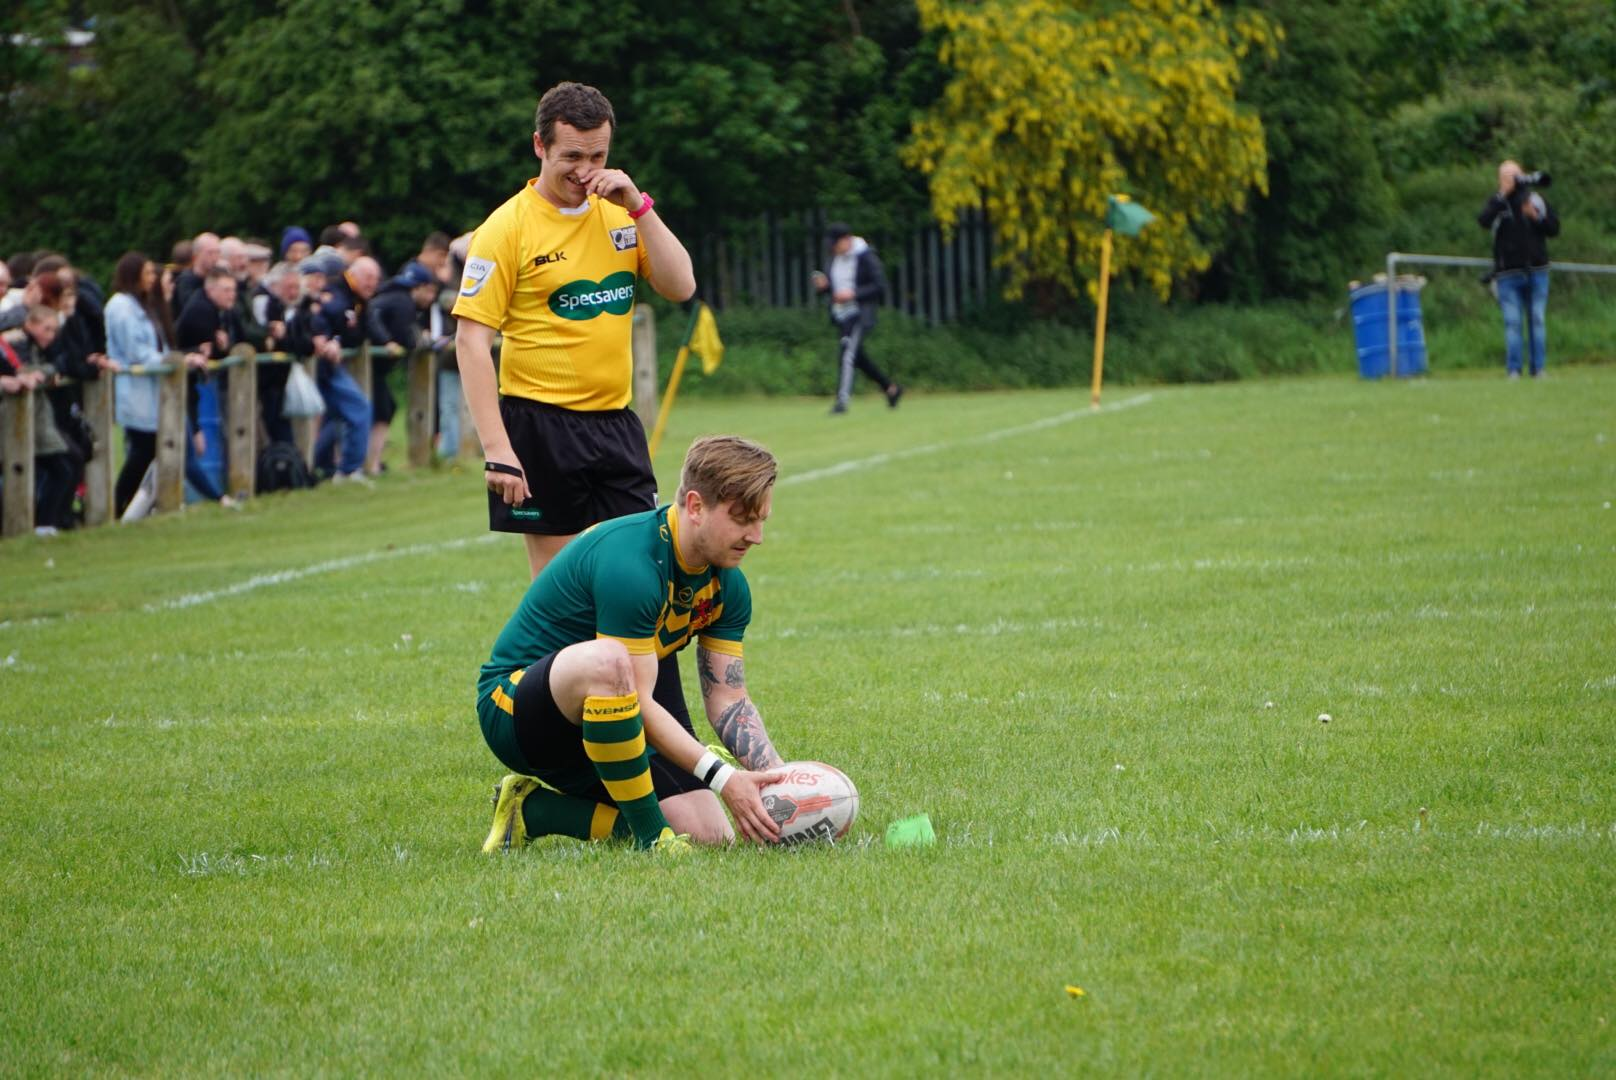 Experienced ball player Scott Partis featured for West Hull Academy this weekend.